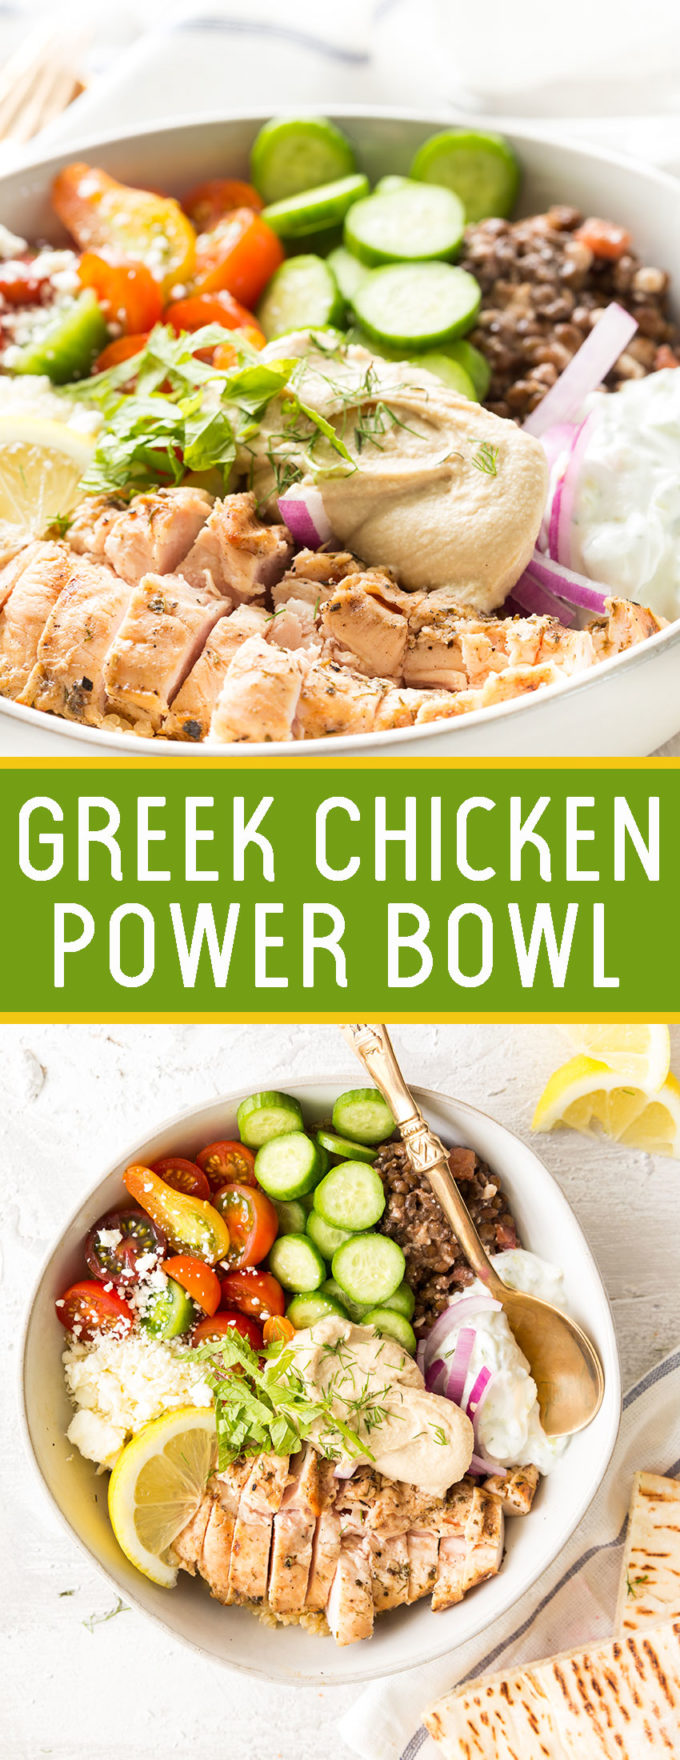 Greek chicken power bowl is full of nutritious and delicious flavors, and totally delicious.